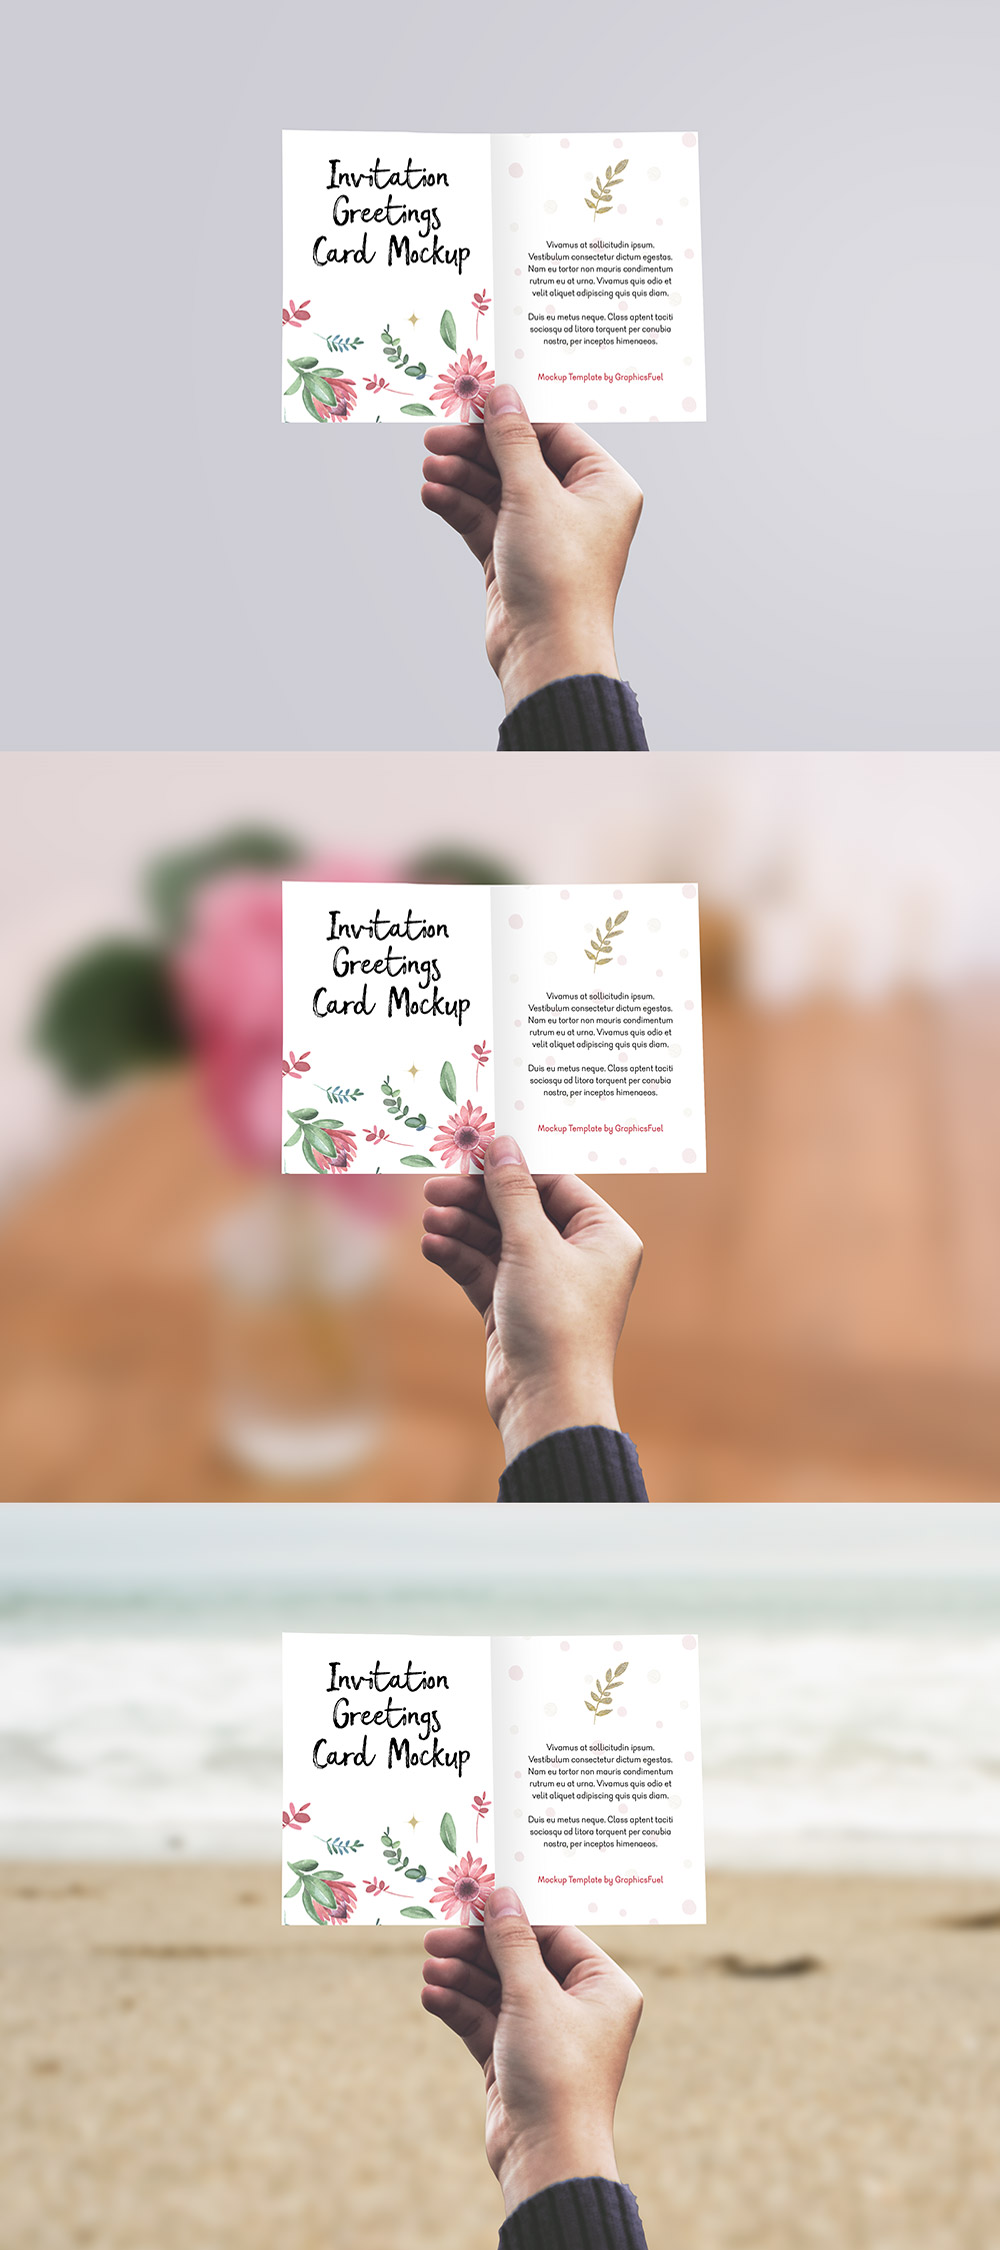 Invitation / Greeting Card in Hand Mockup PSD